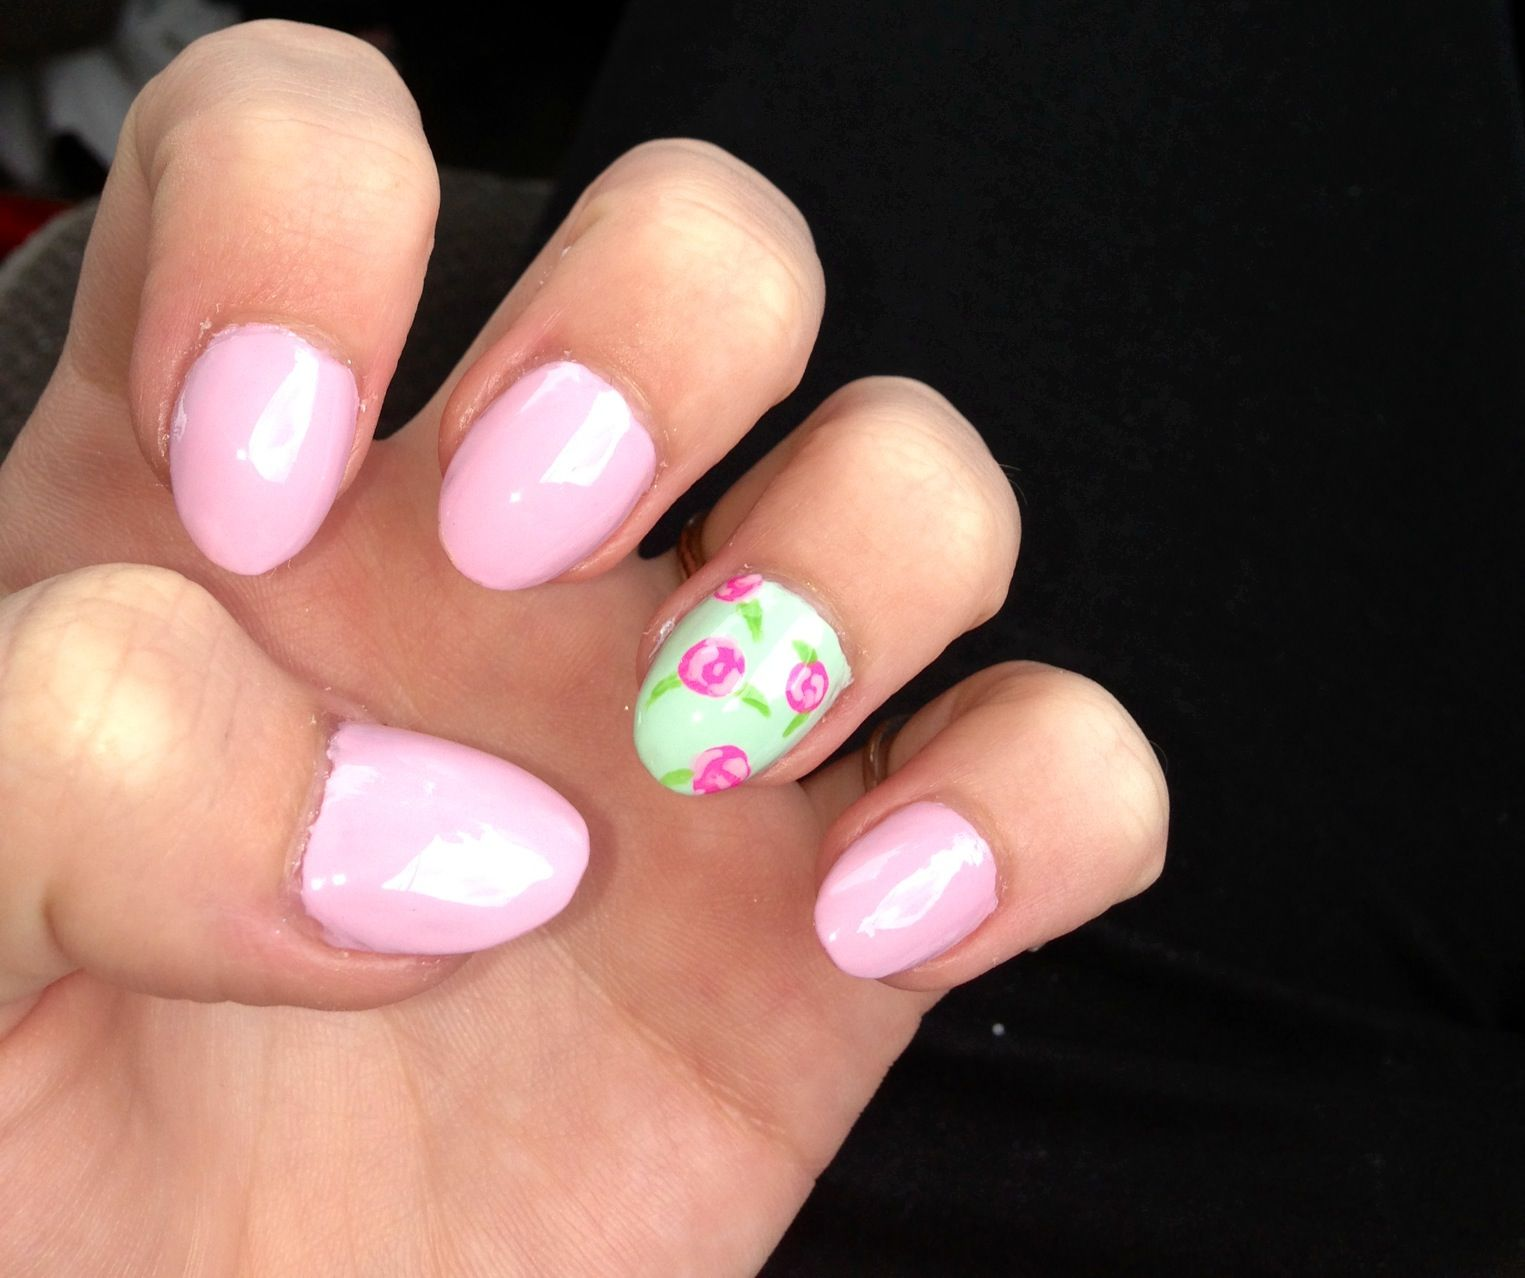 acrylic nails fashion design flowers green pink almond shaped